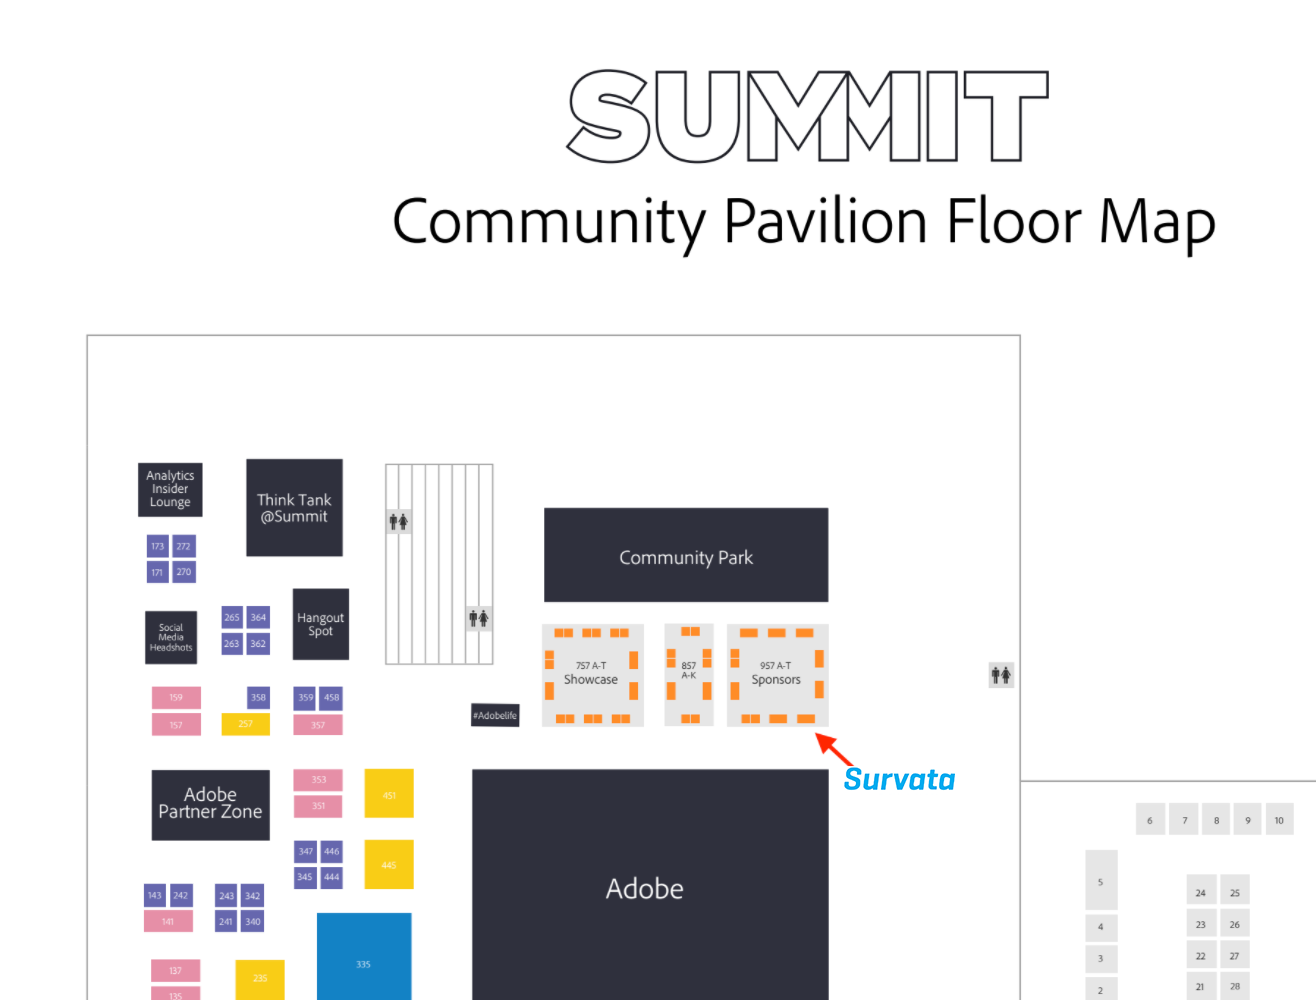 Survata at Adobe Summit